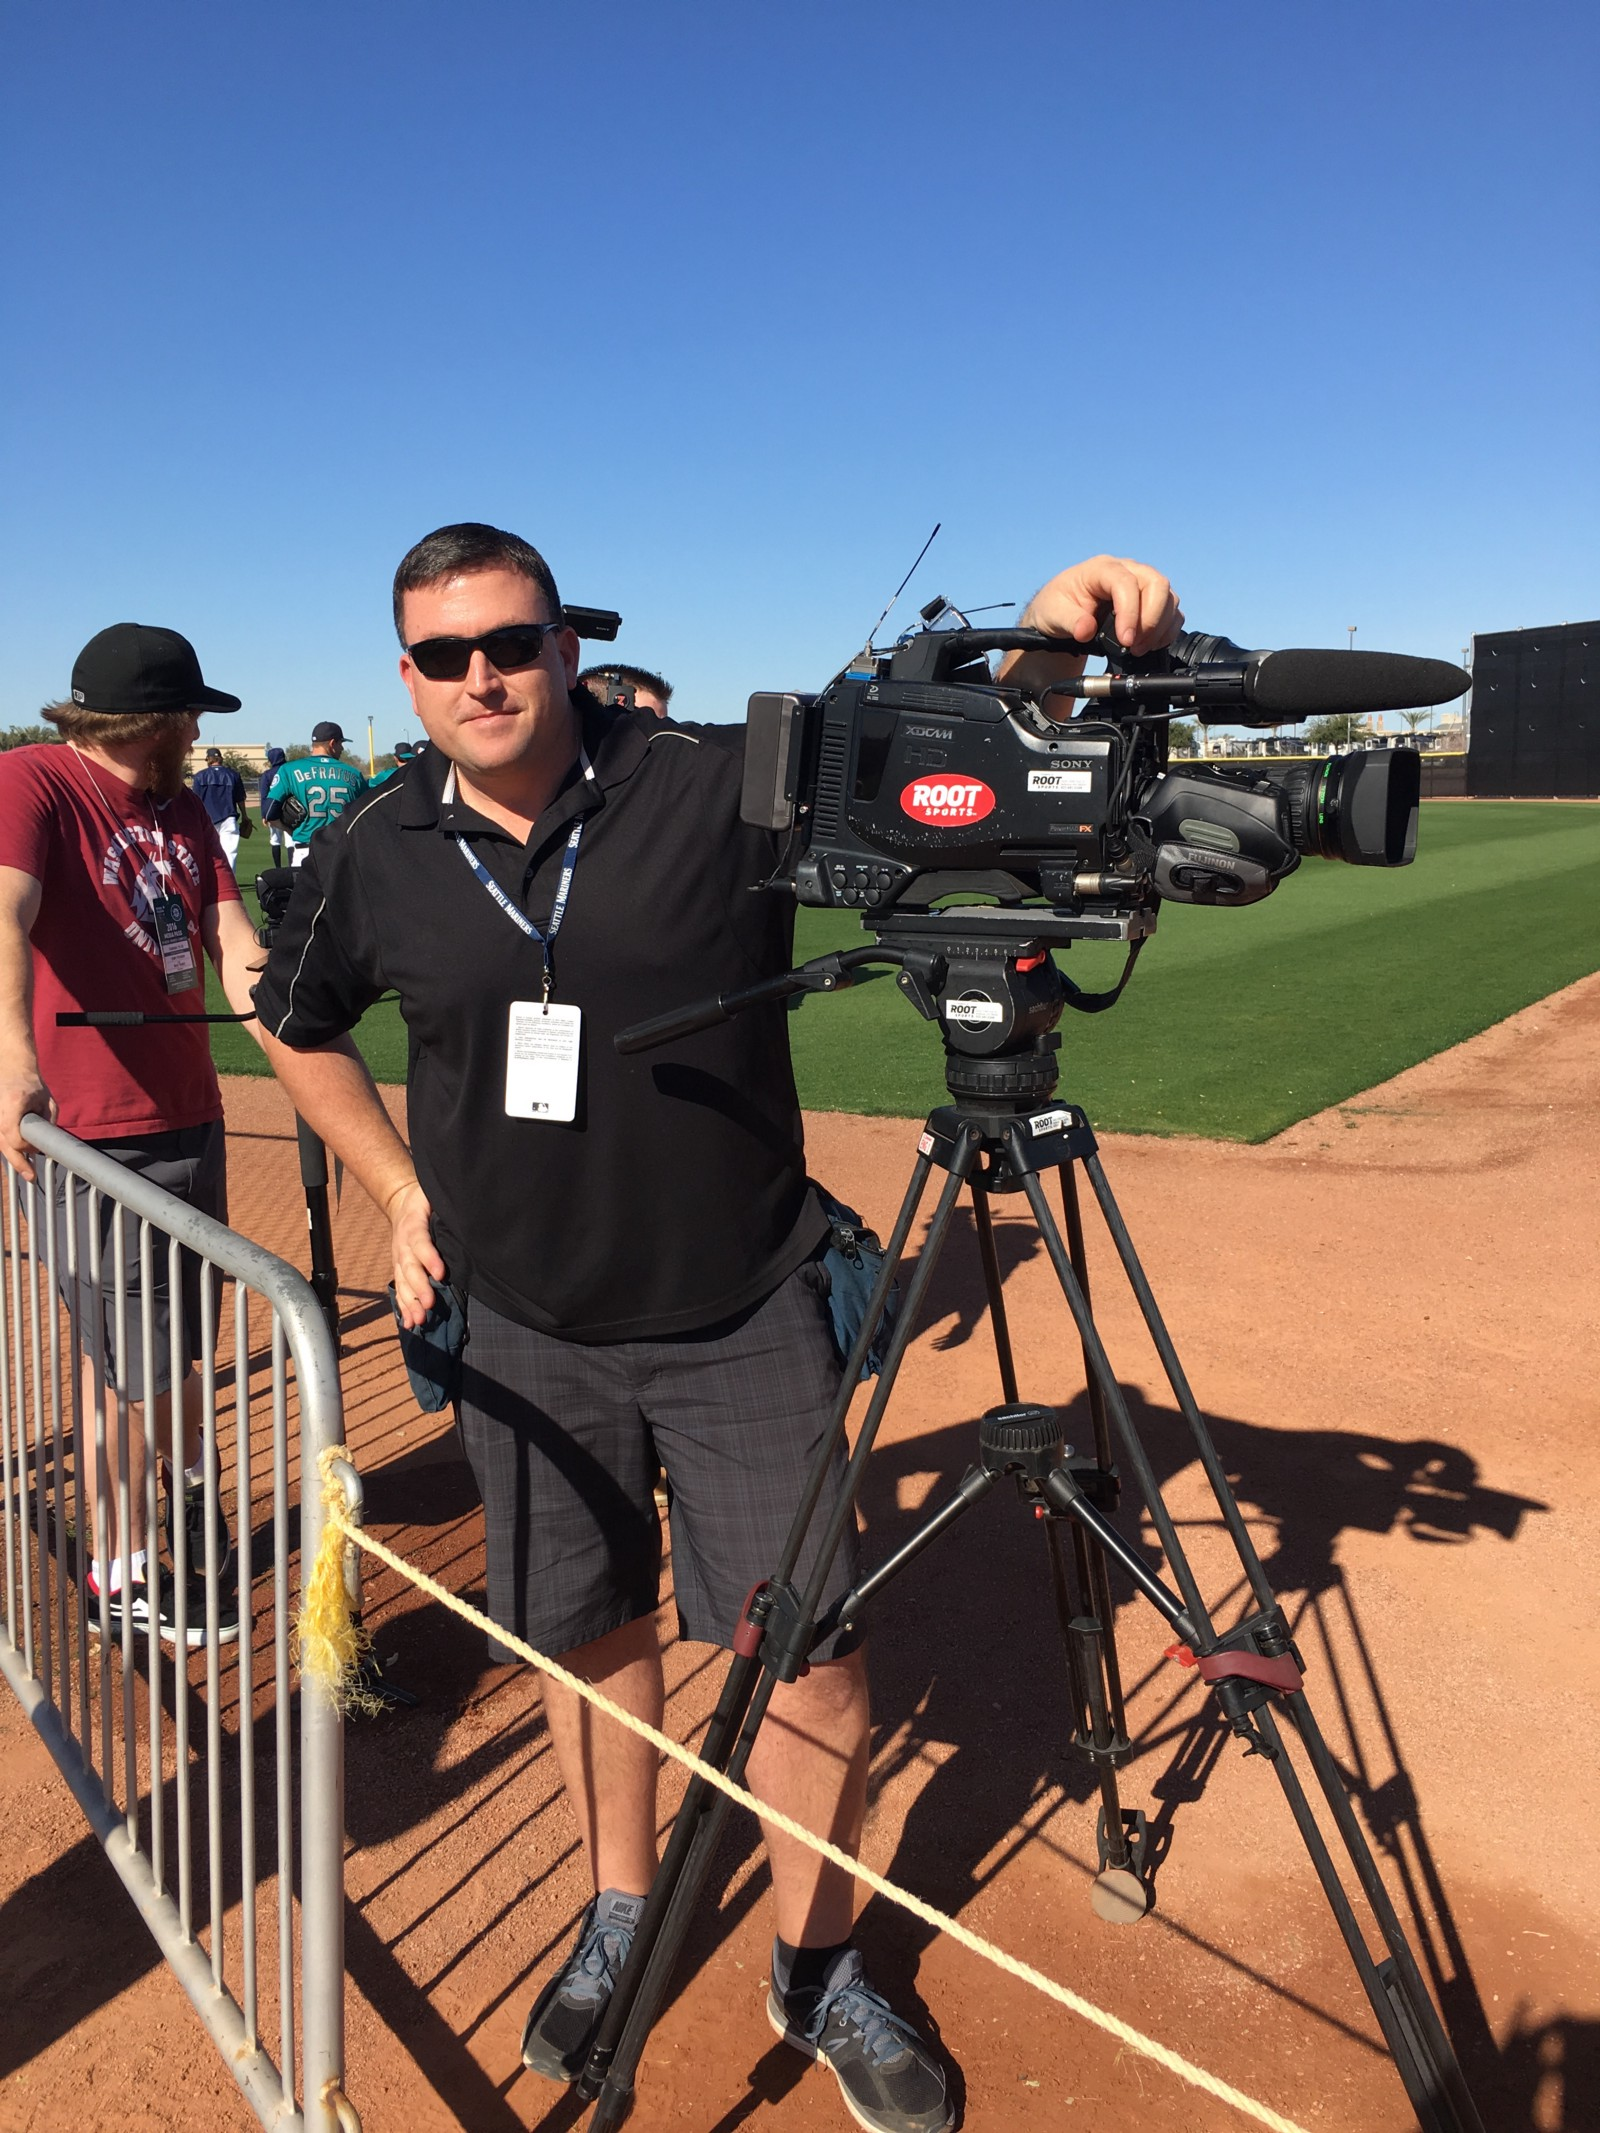 Mariners spring training update day 3 from the corner of edgar if you see mariners spring training workout video on this blog on tv or on twitter we can thank root sports cameraman kevin vocht who works tirelessly to sciox Gallery